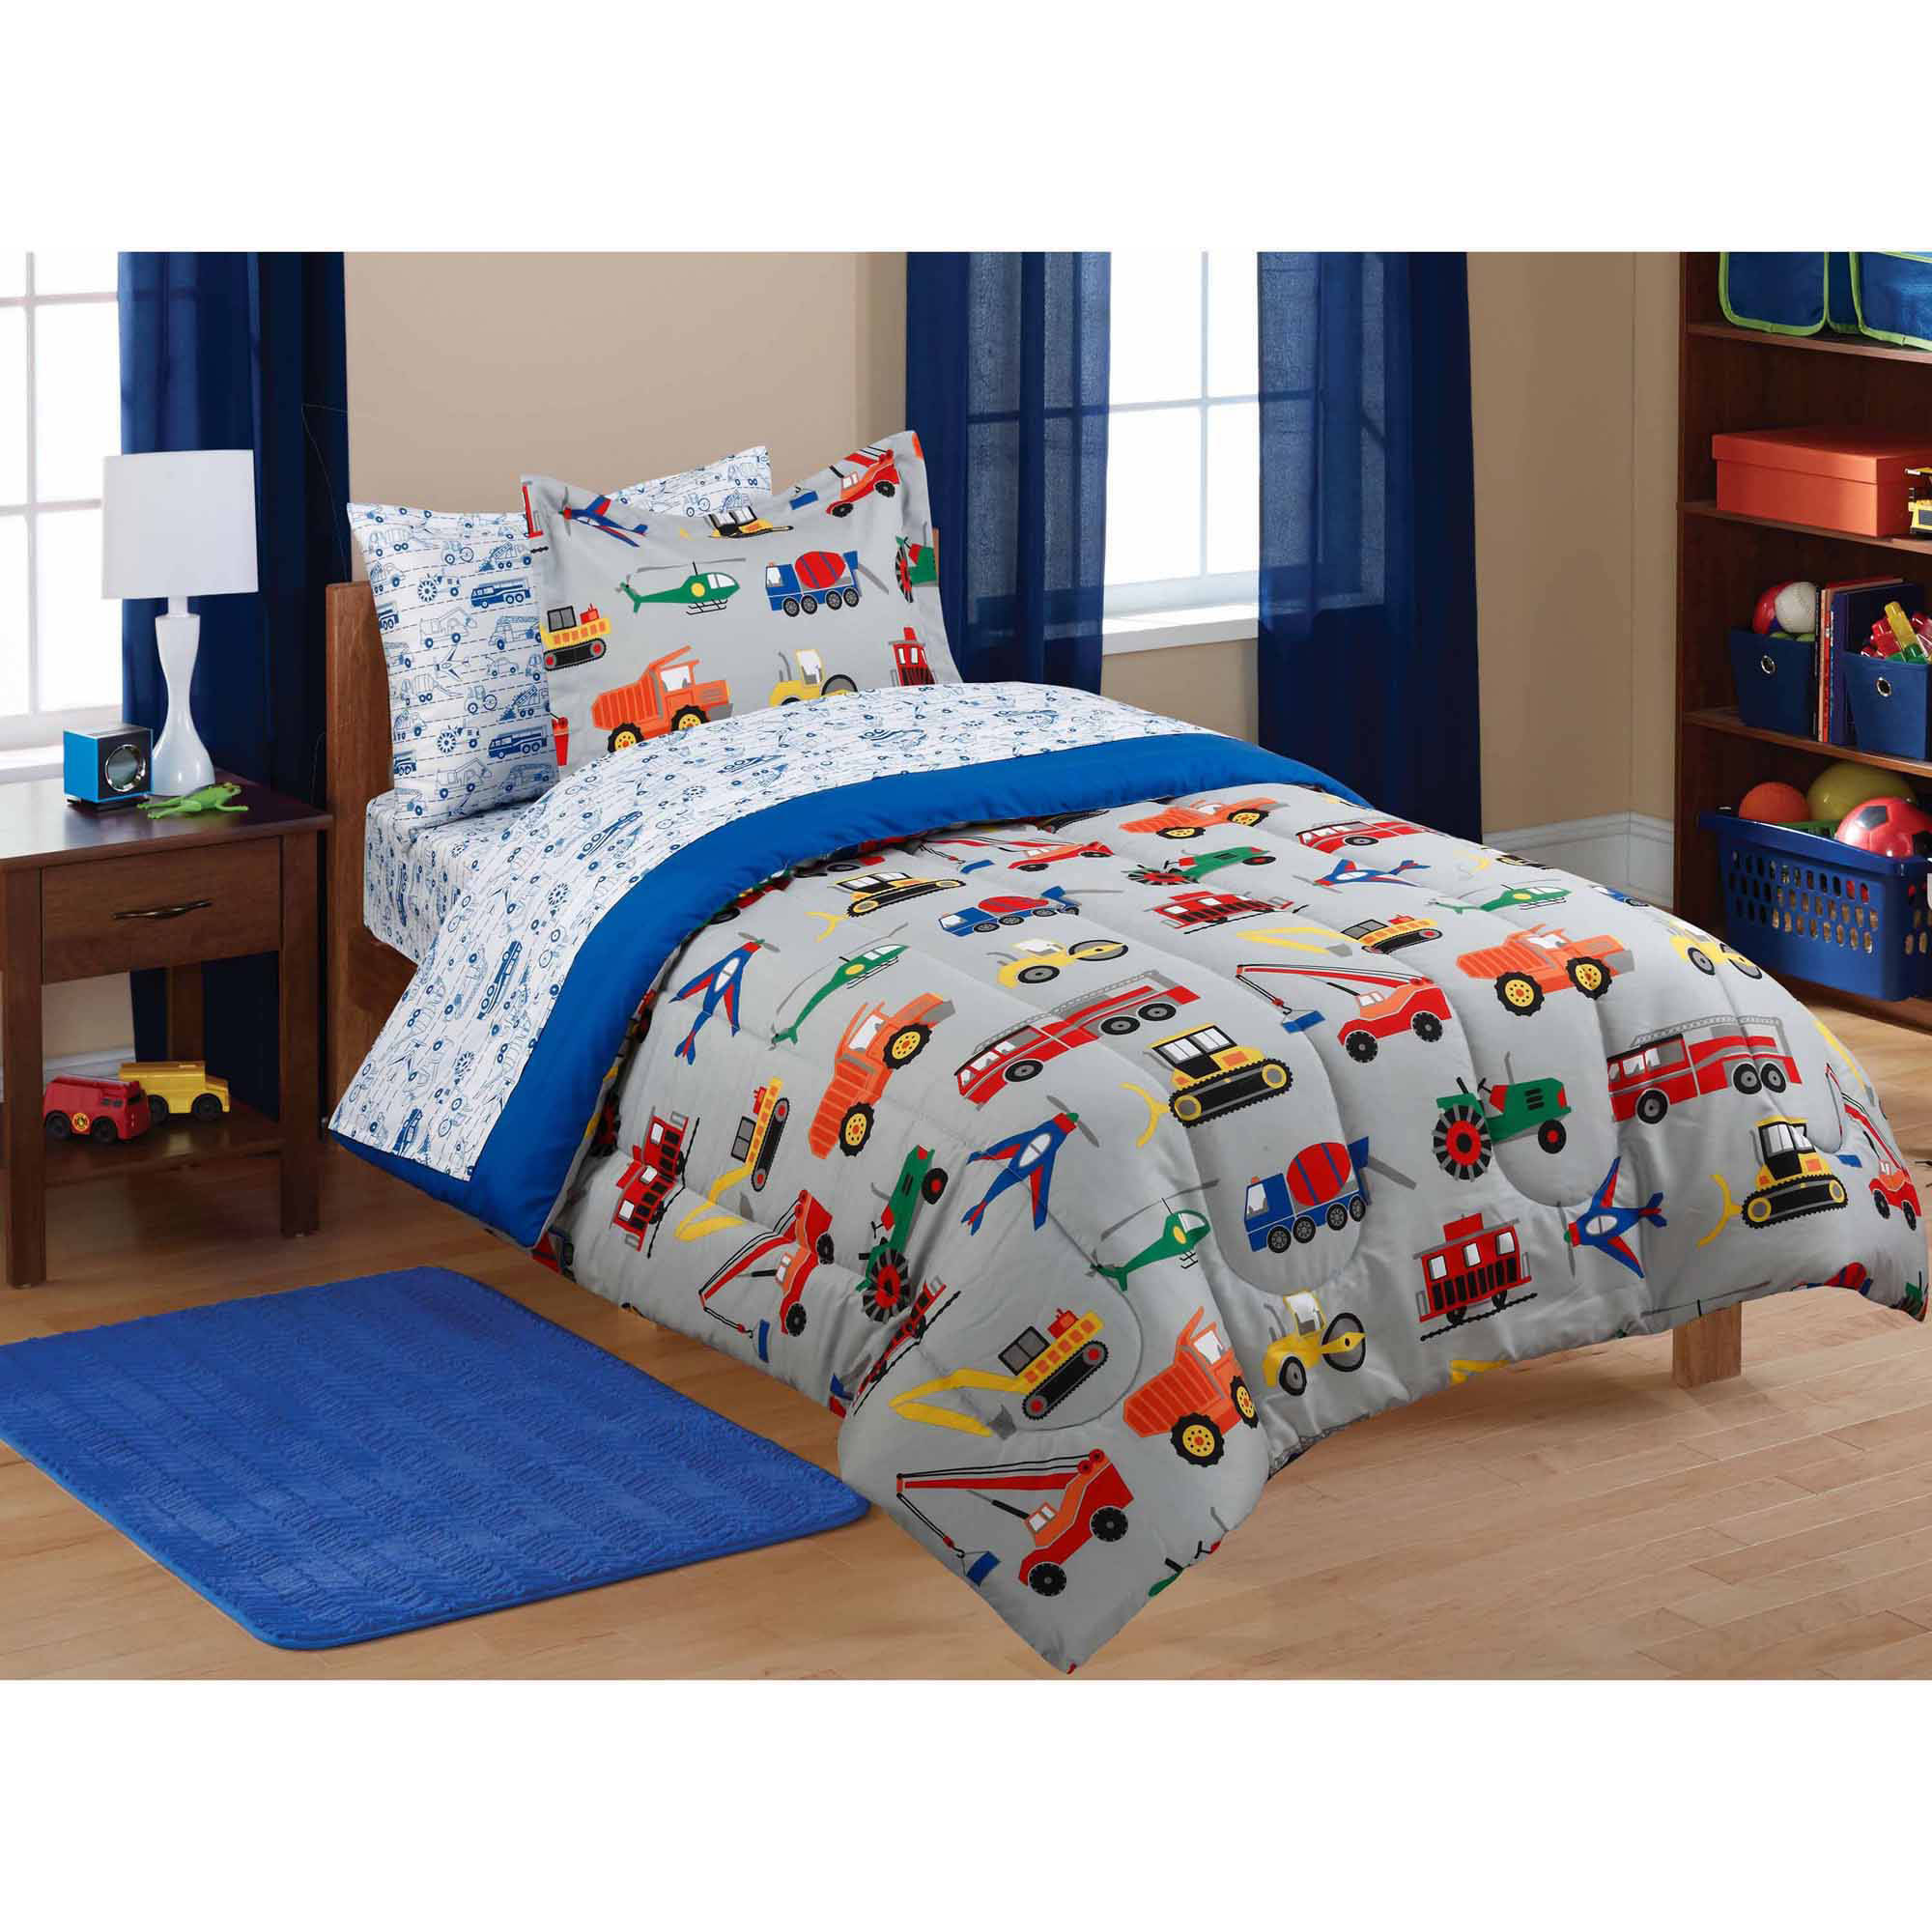 kids bedding mainstays kidsu0027 transportation coordinated bed in a bag - walmart.com WPERISL